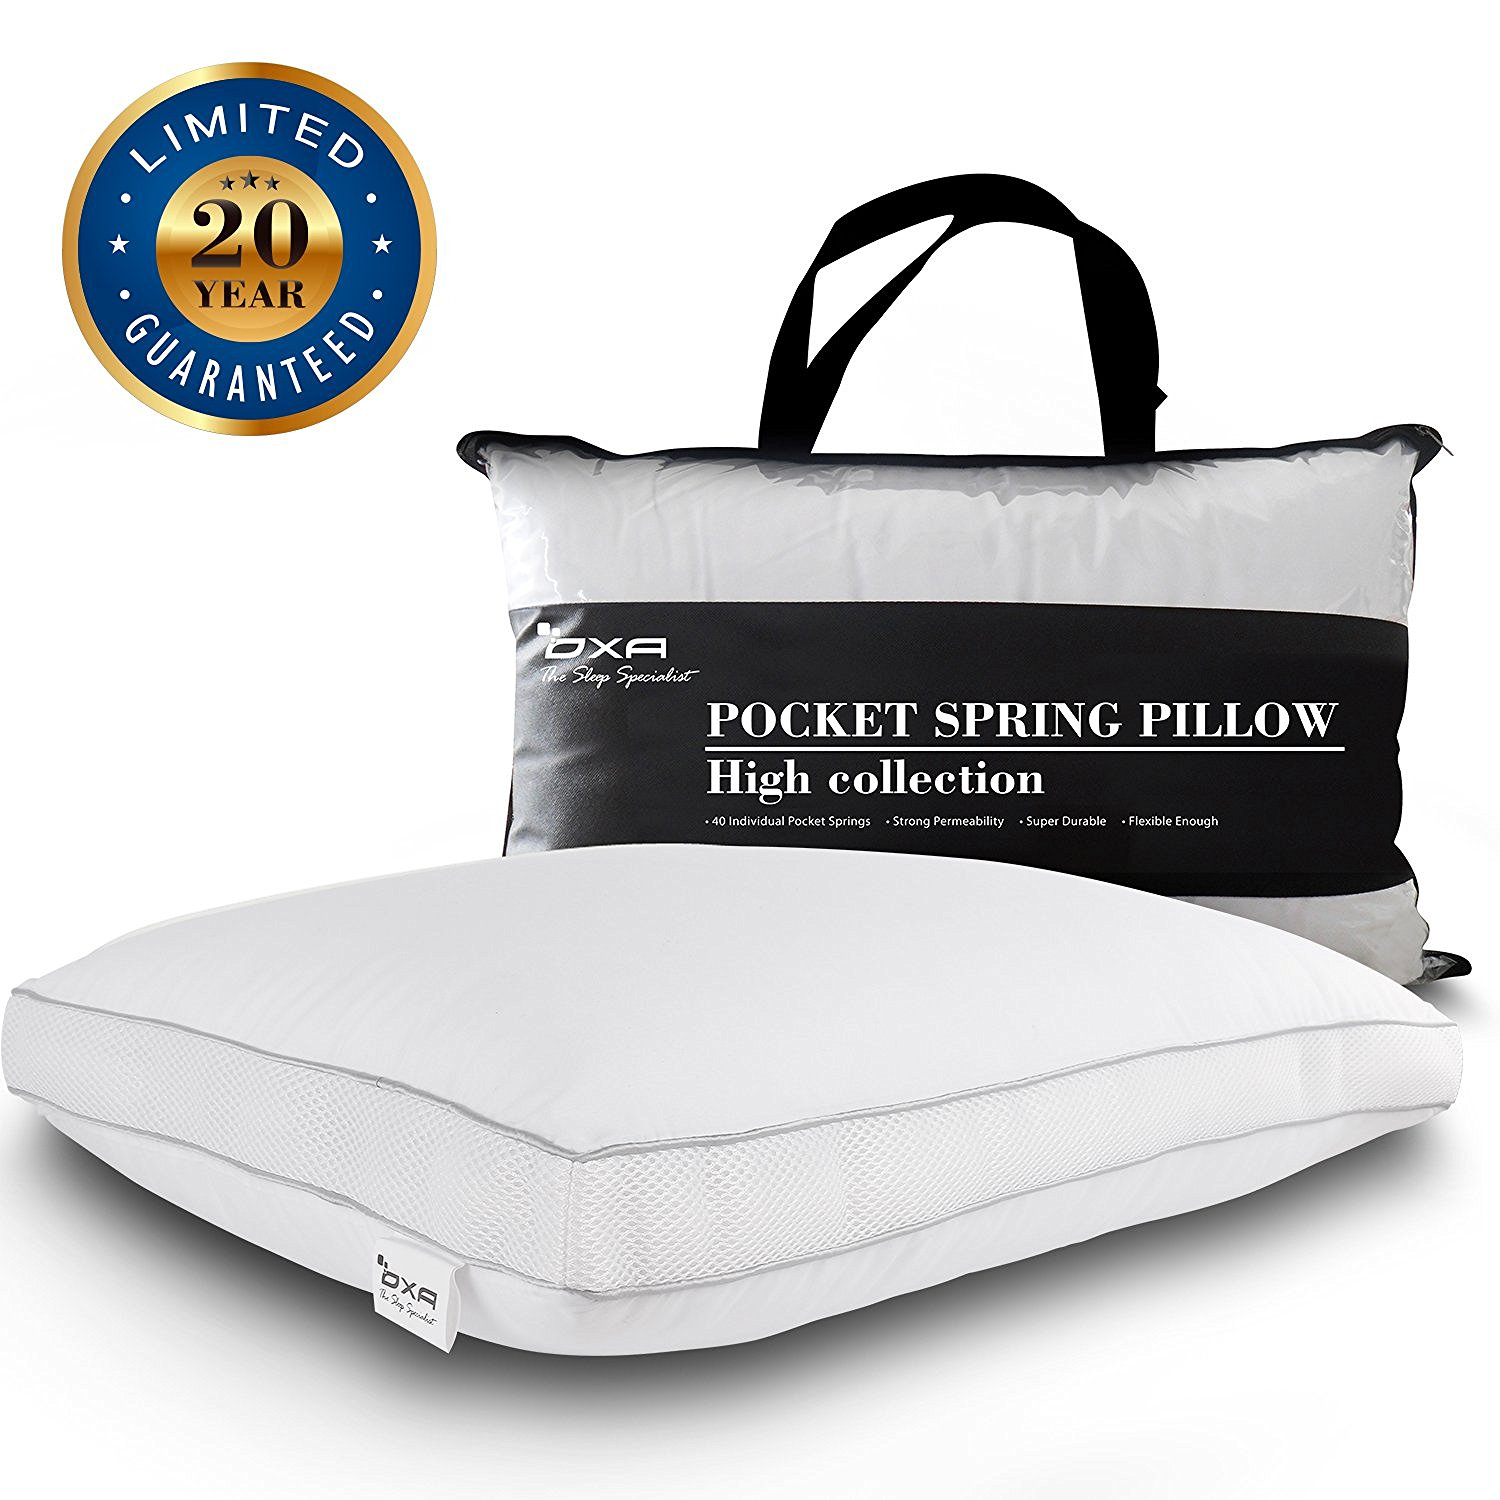 to the allure pillow pillows best bed gallery buy online of